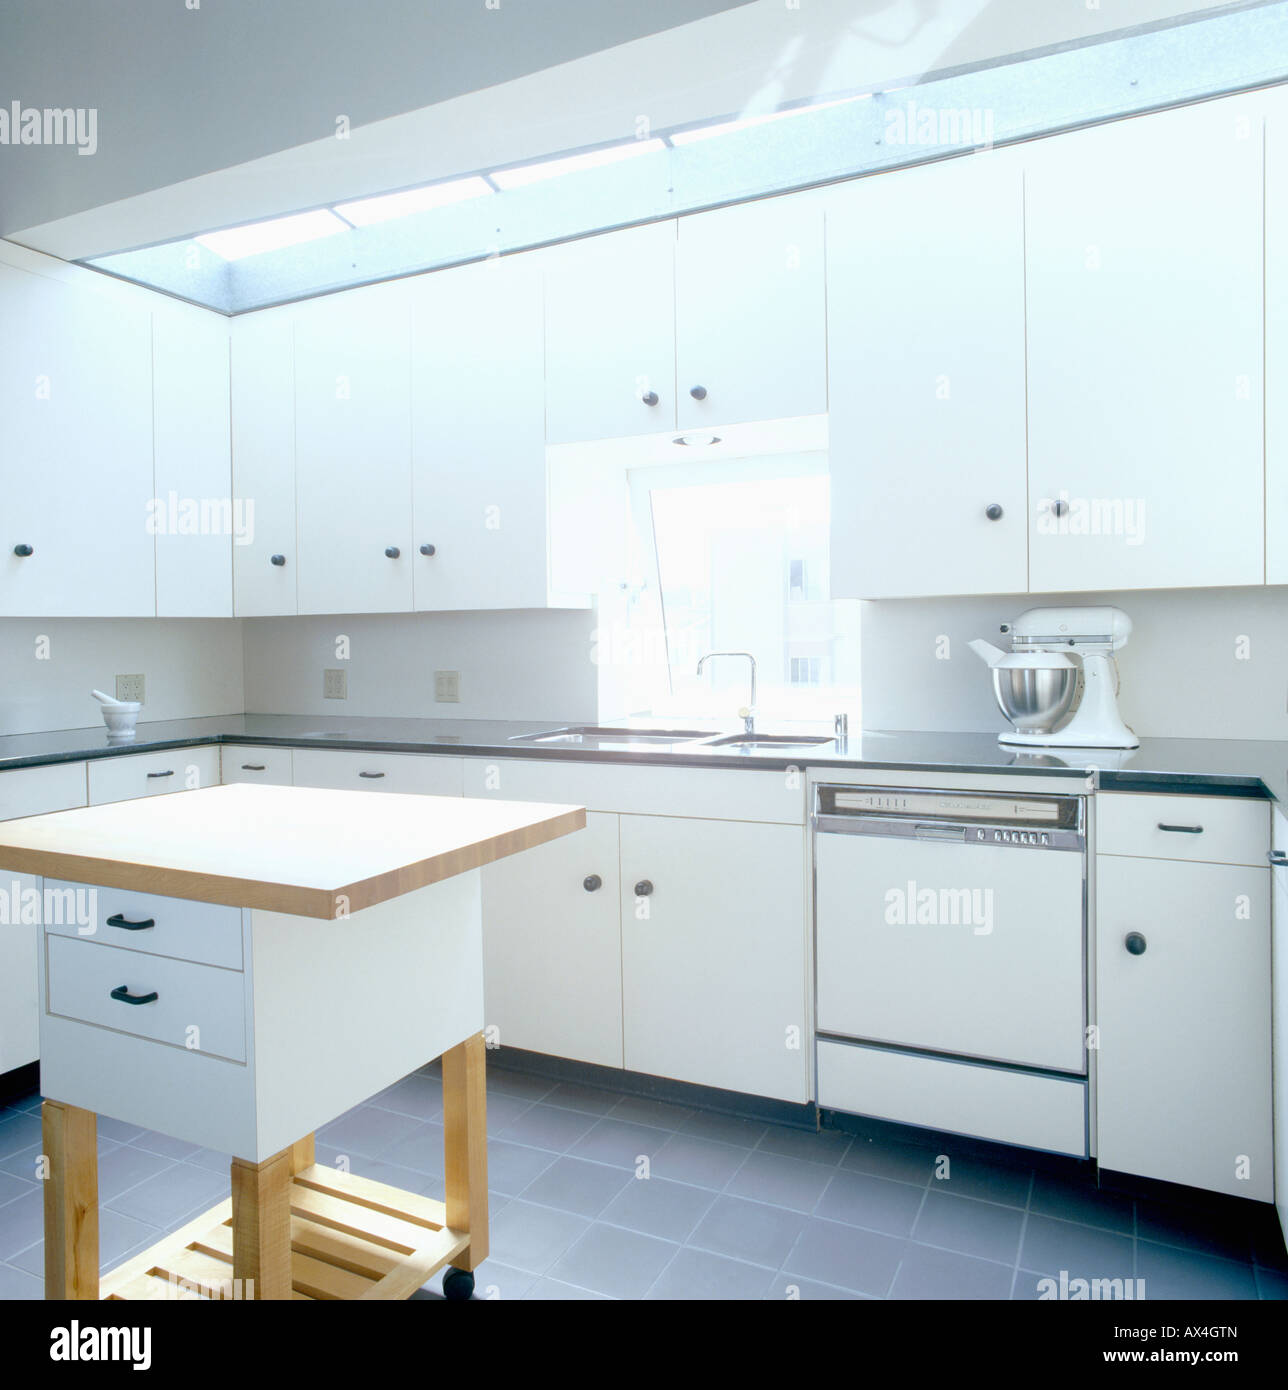 Electric mixer on worktop in modern white streamlined kitchen with ...